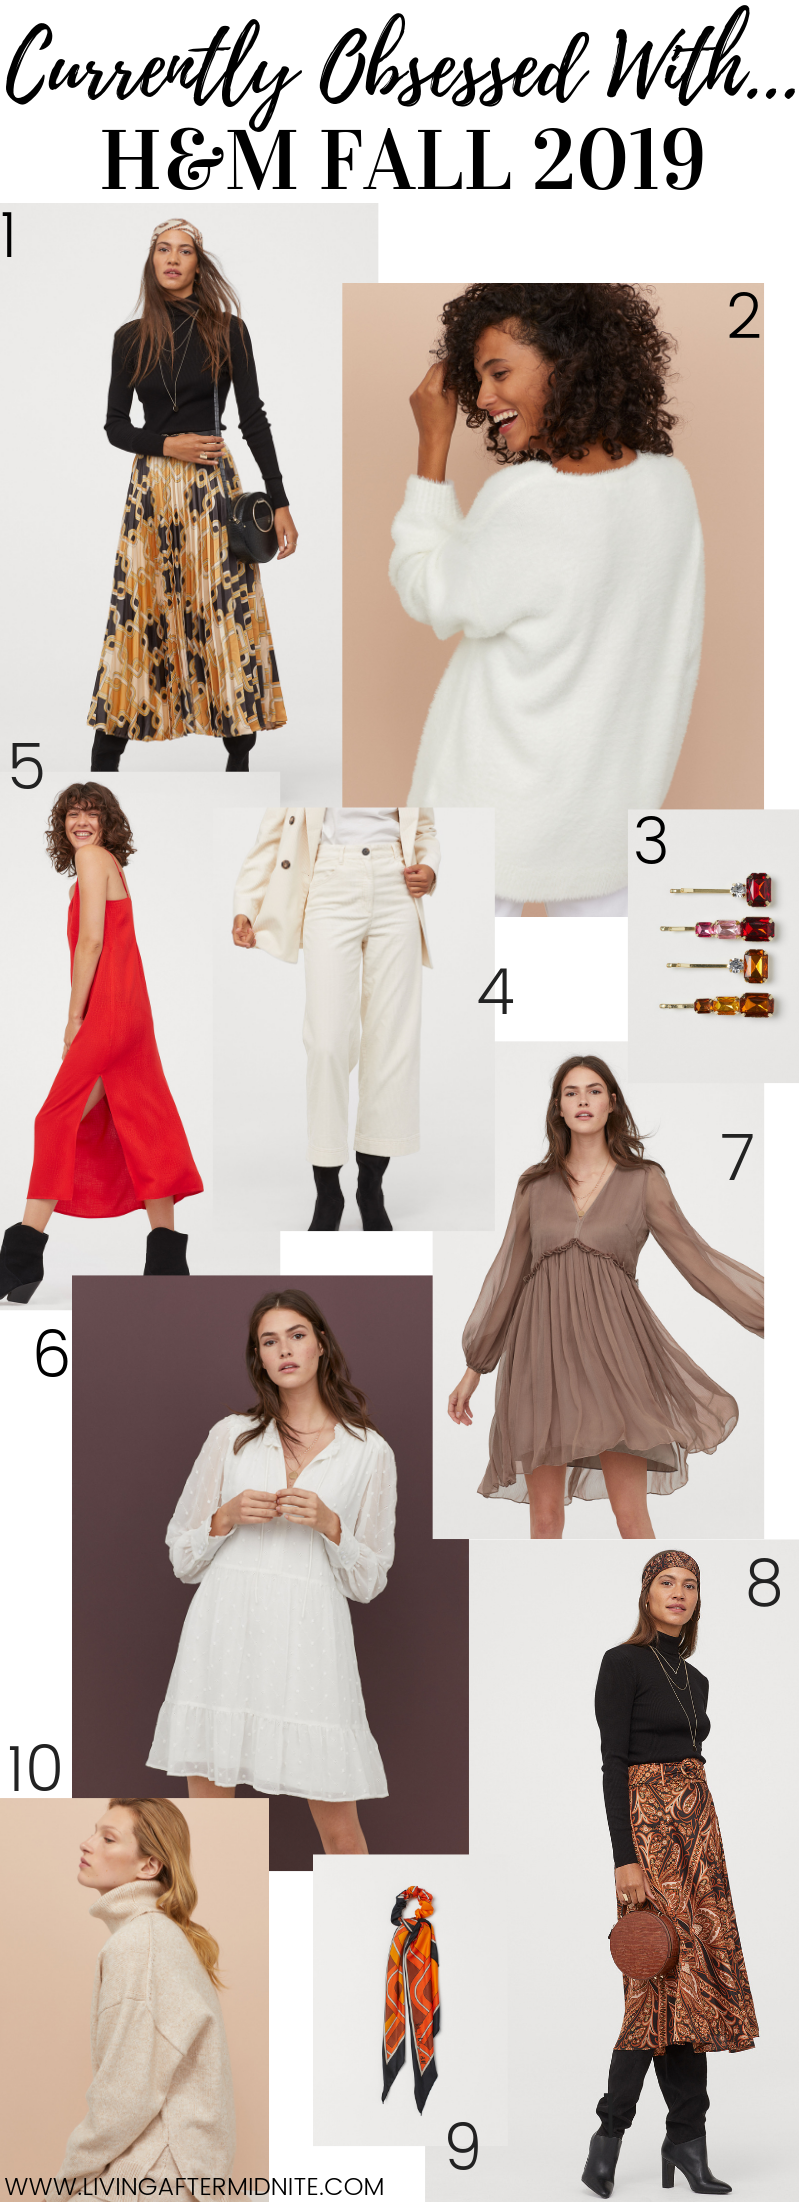 Currently Obsessed With: H&M Fall 2019 New Arrivals